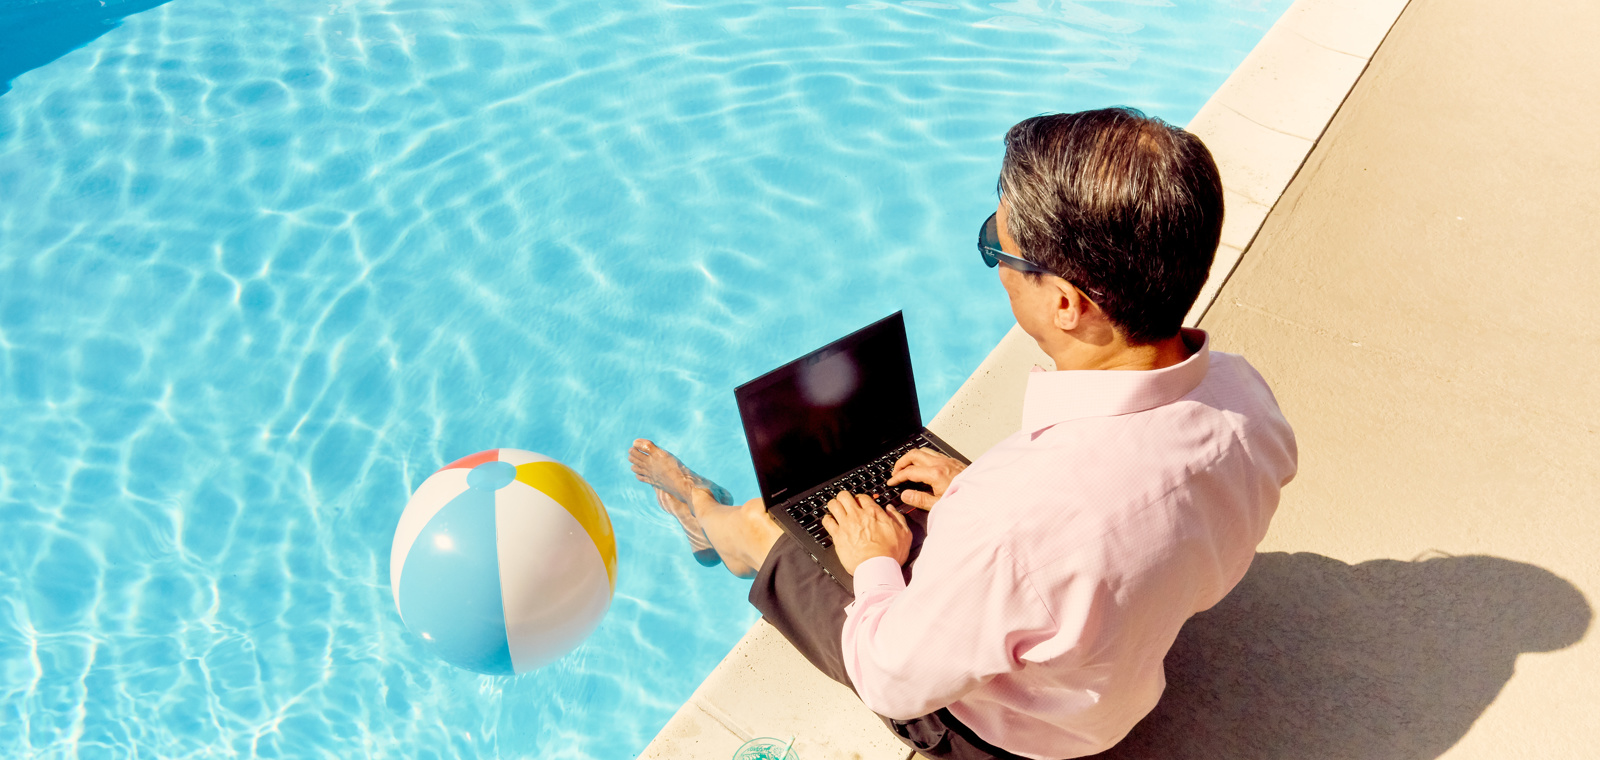 Man working on his laptop relaxing by the pool.